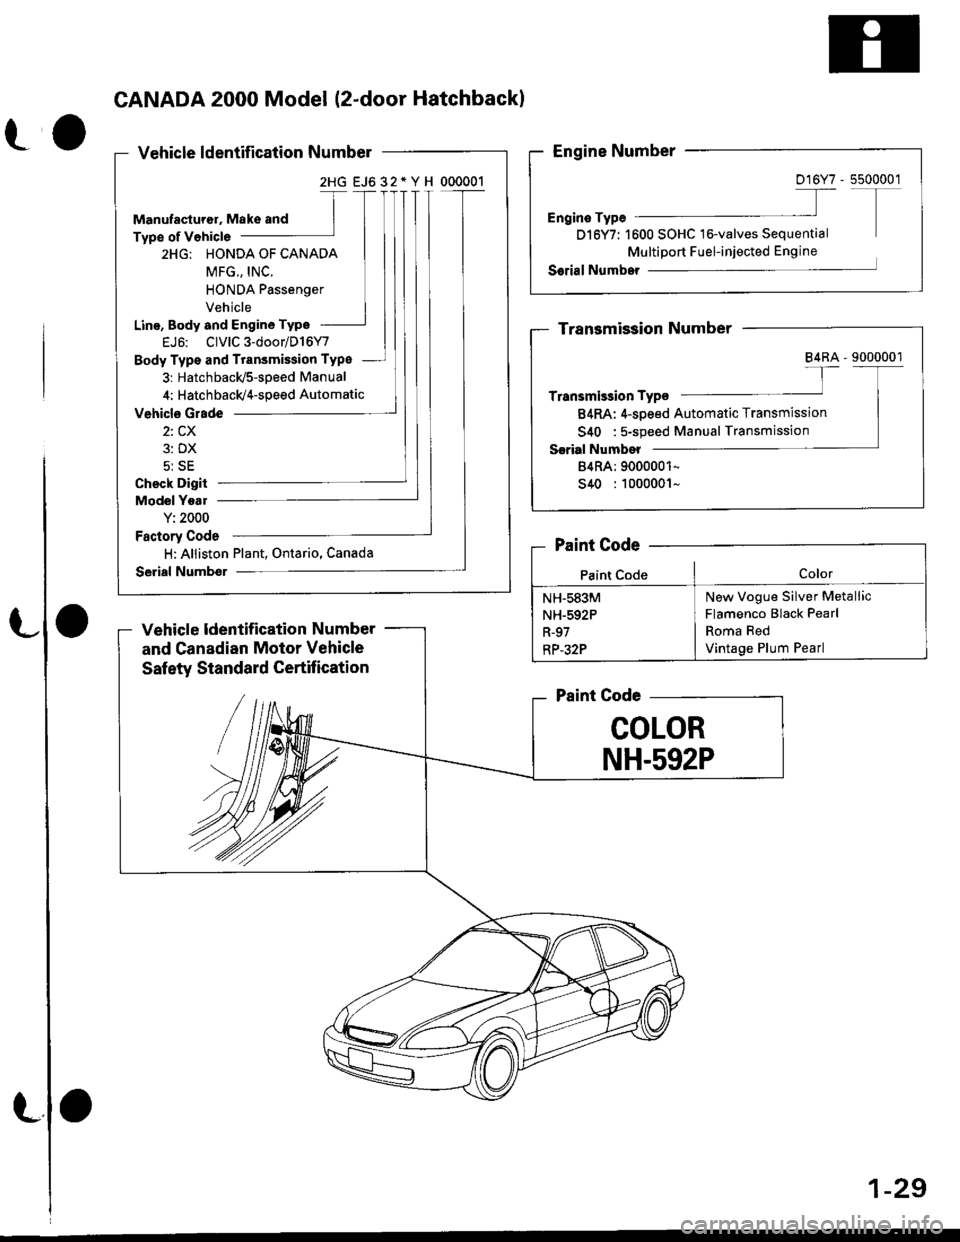 Honda Civic 1996 6g Workshop Manual 16 Valve Engine Diagram